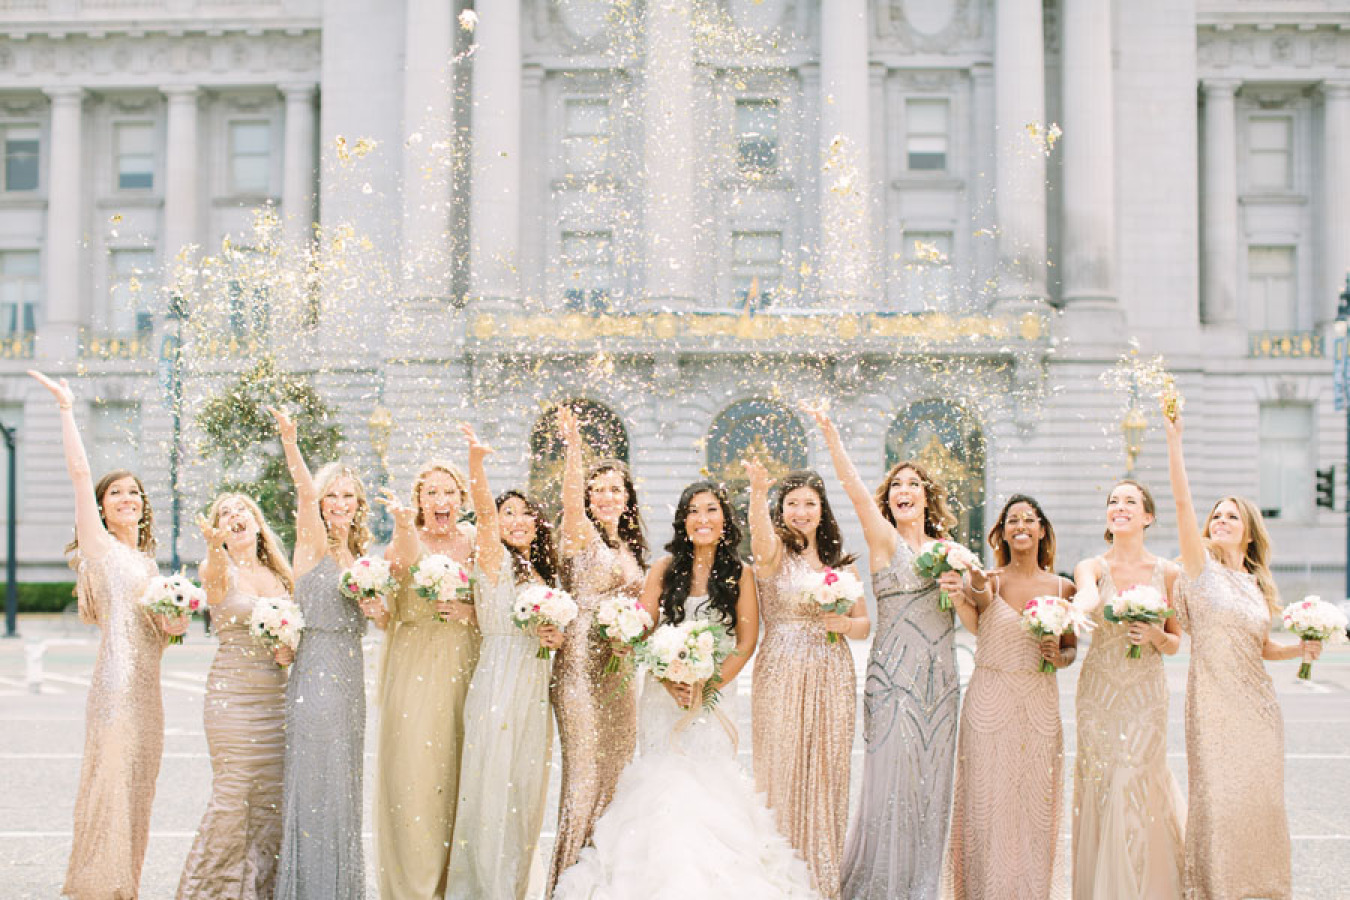 5-wedding-planning-tips http://itgirlweddings.com/5-wedding-planning-tips/